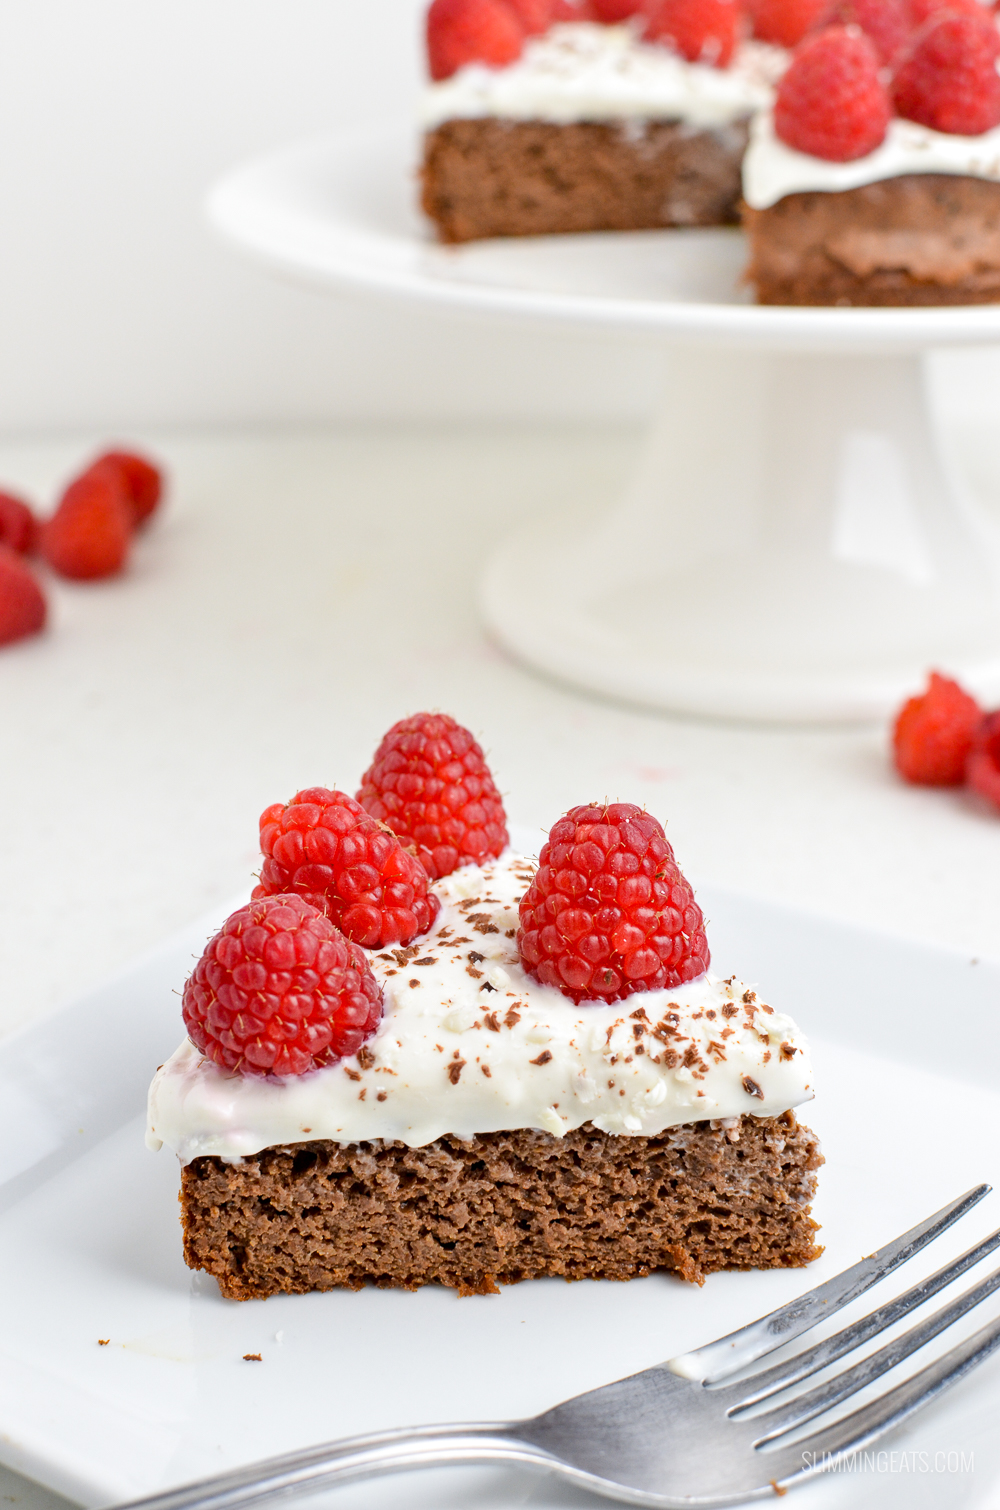 slice of raspberry topped chocolate scan bran cake on white plate with fork